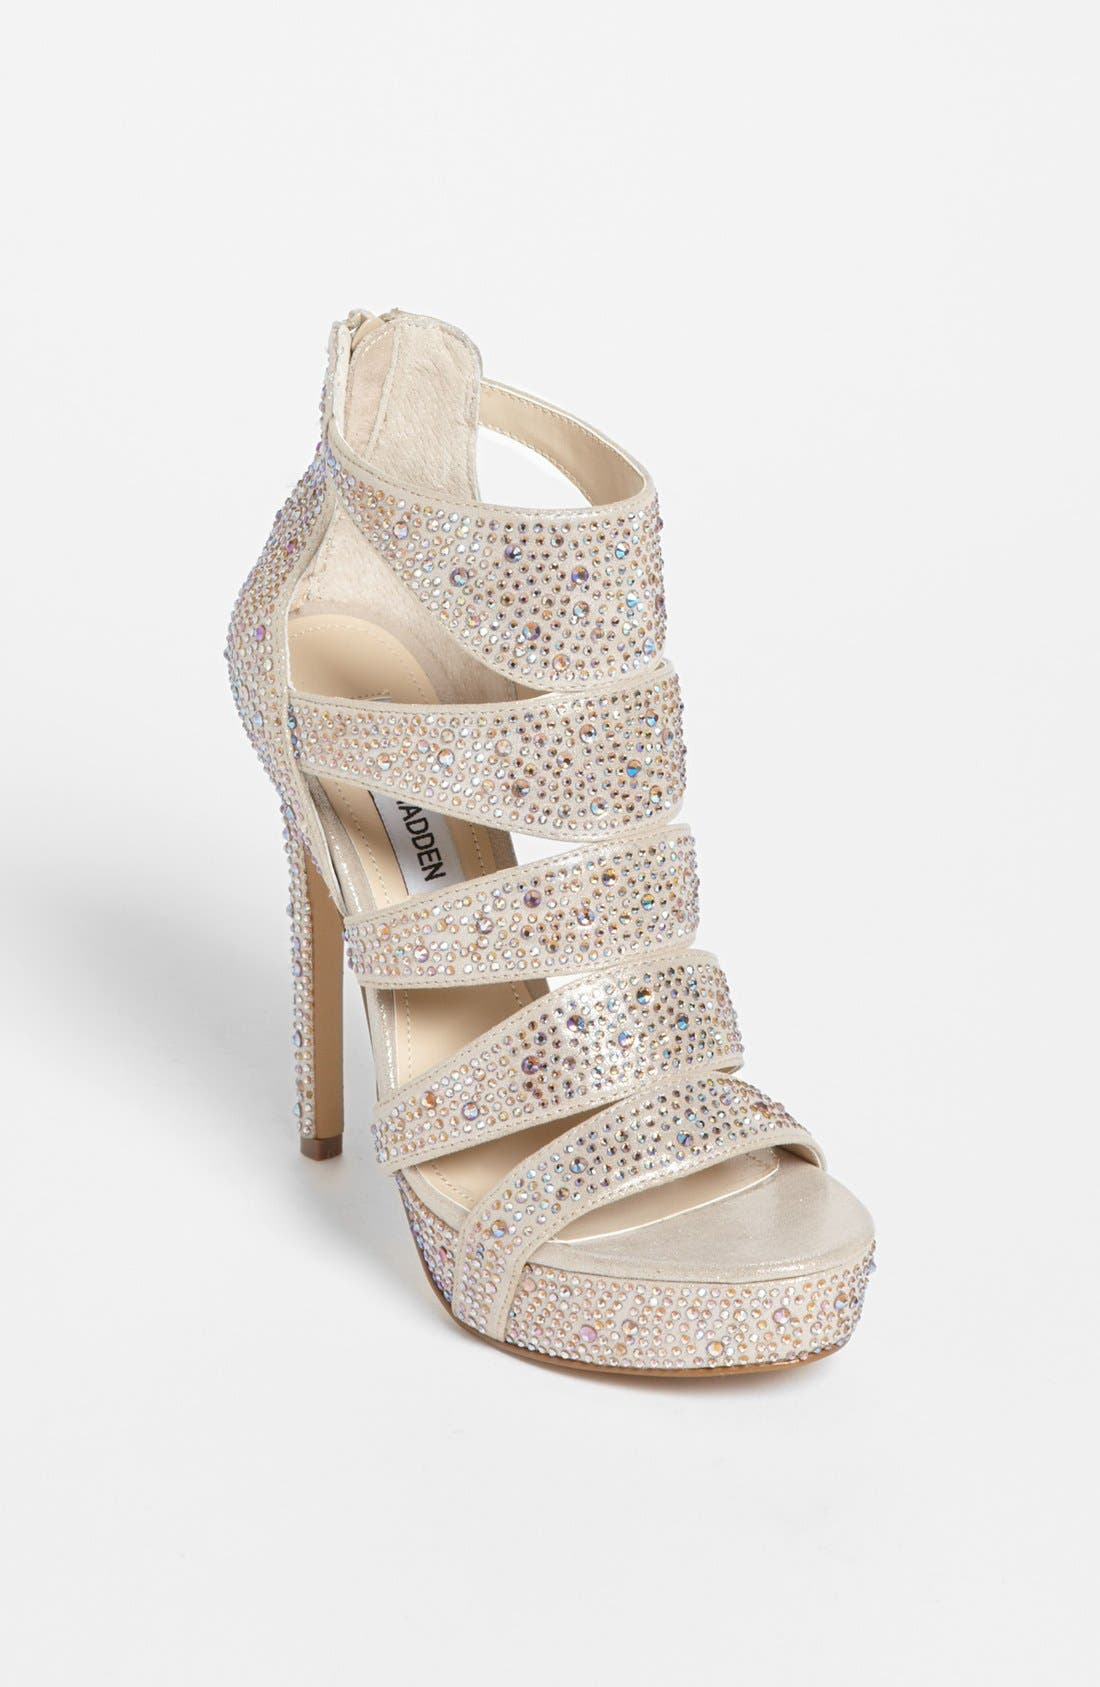 'Spycee-R' Sandal,                             Main thumbnail 1, color,                             Champagne Multi